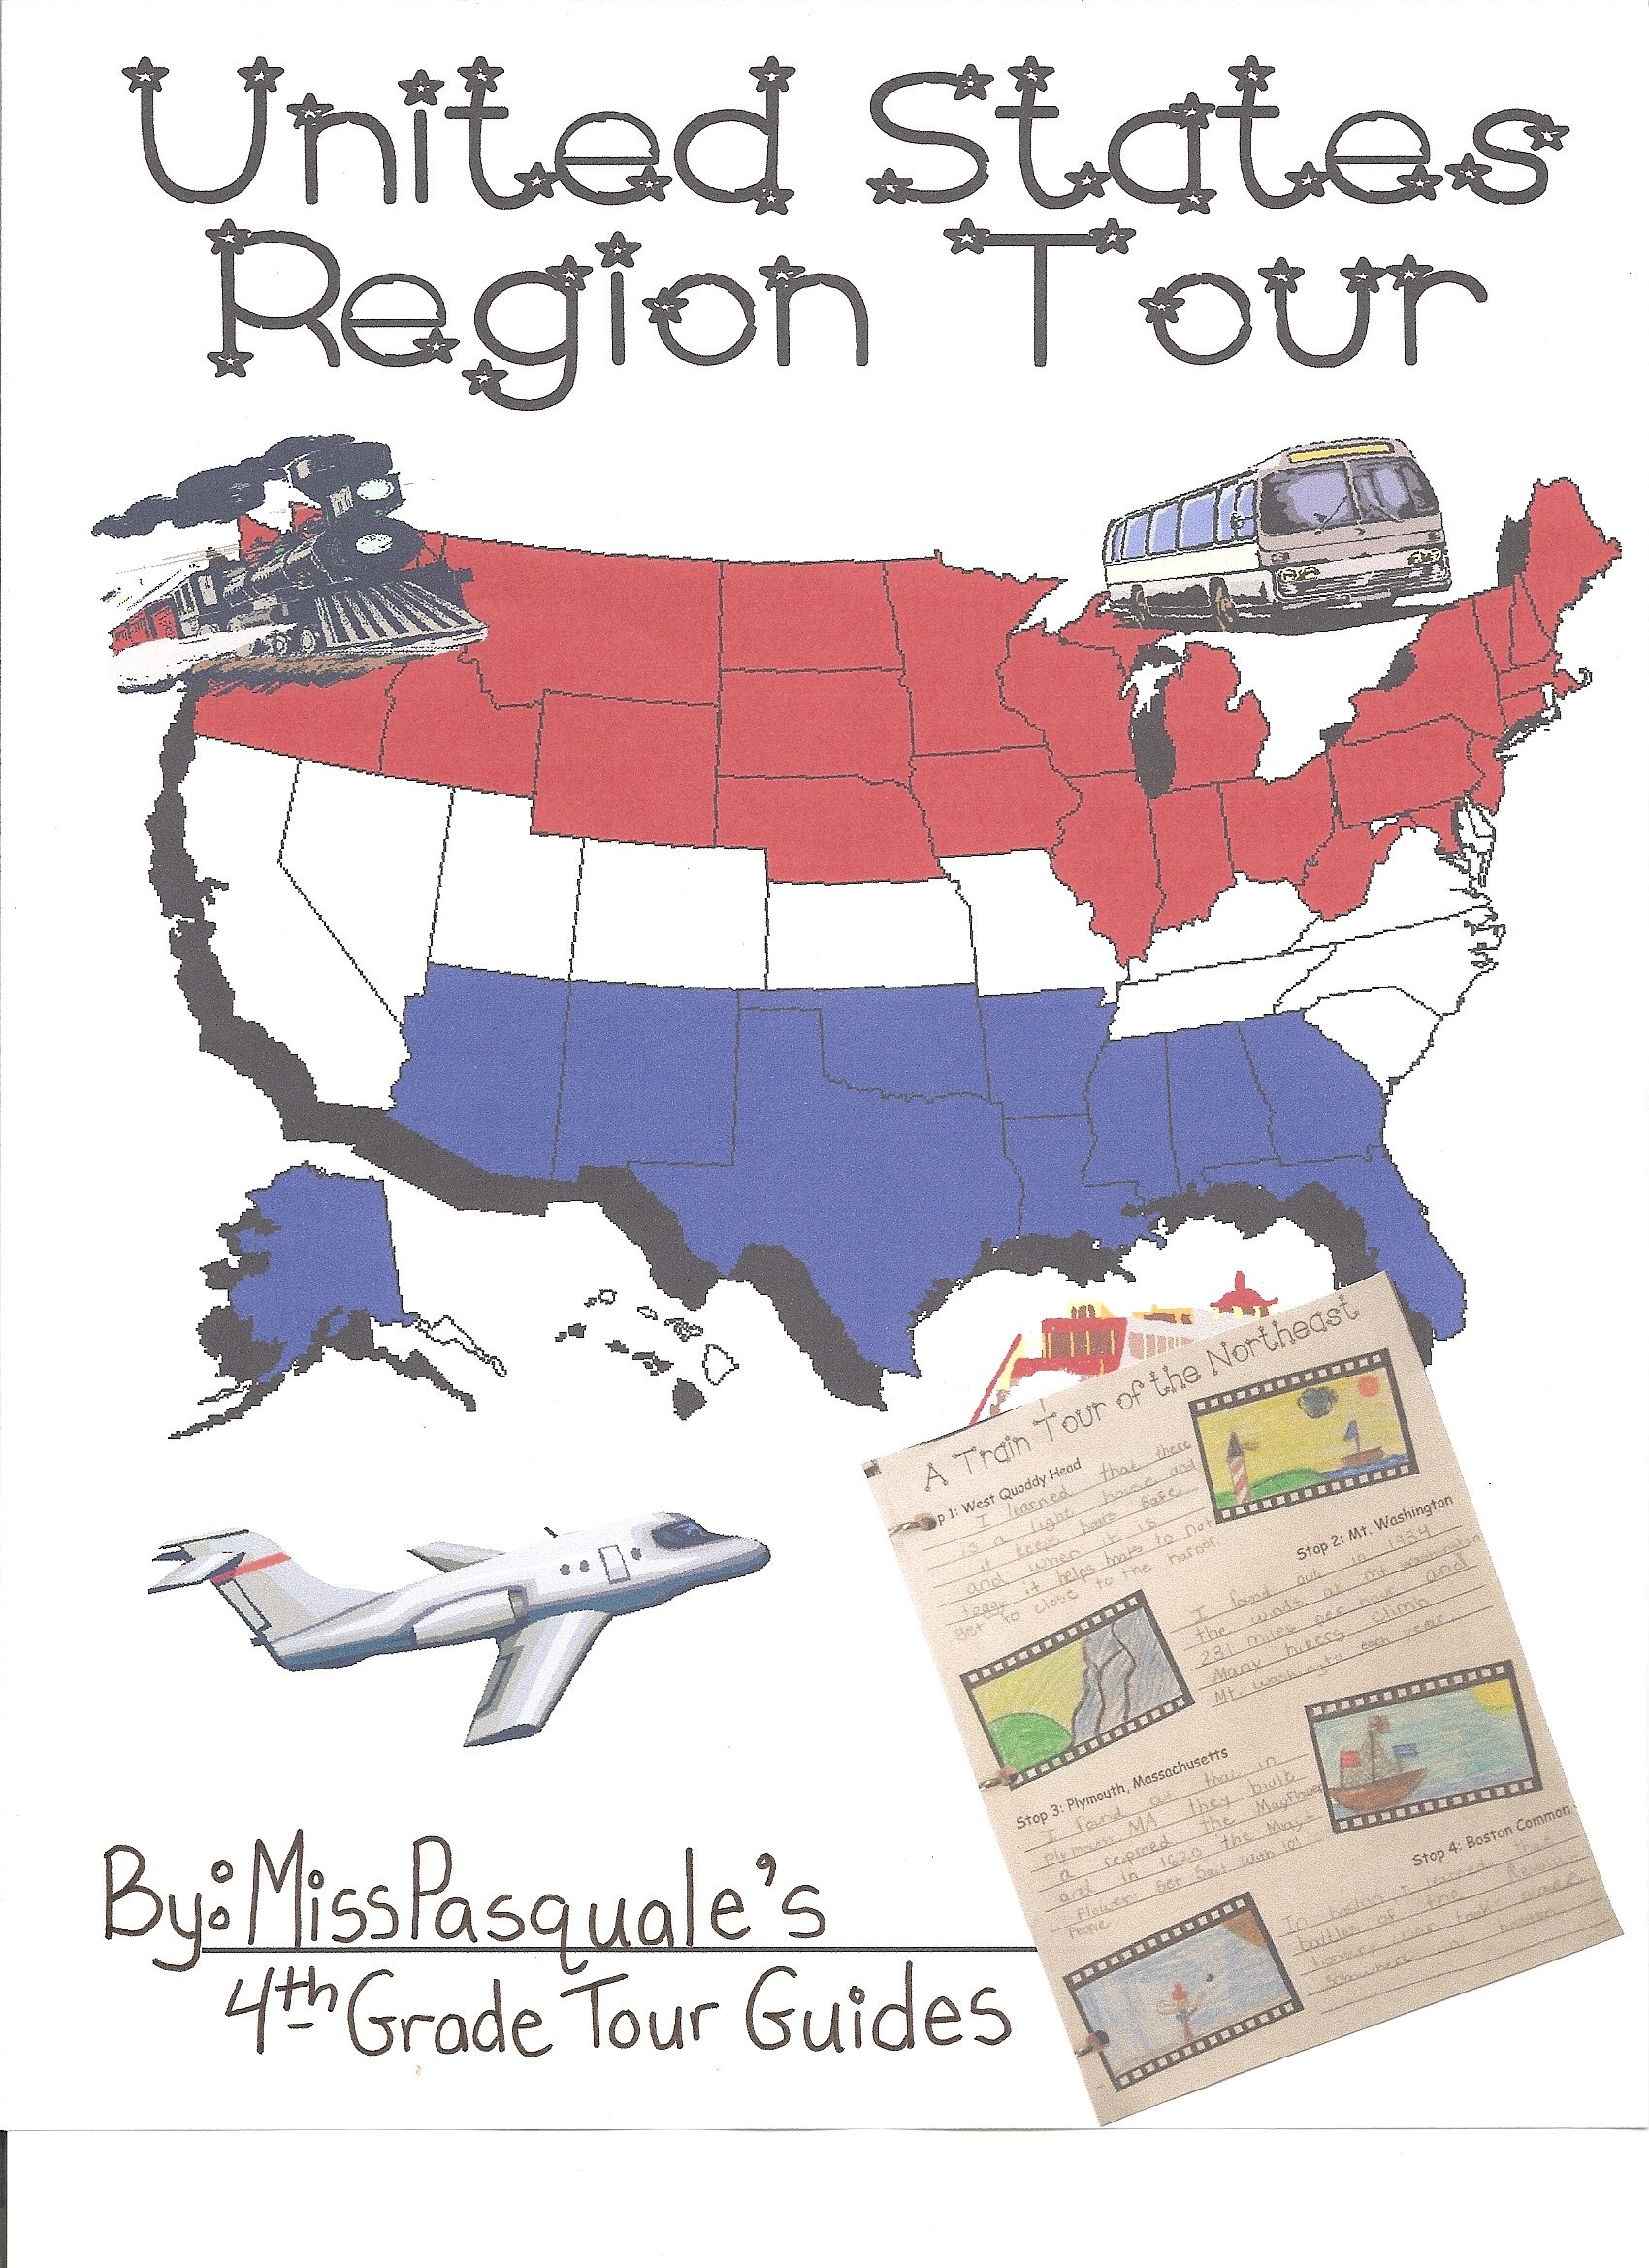 Webquest Tour The Regions Of The United States Created With Zunal